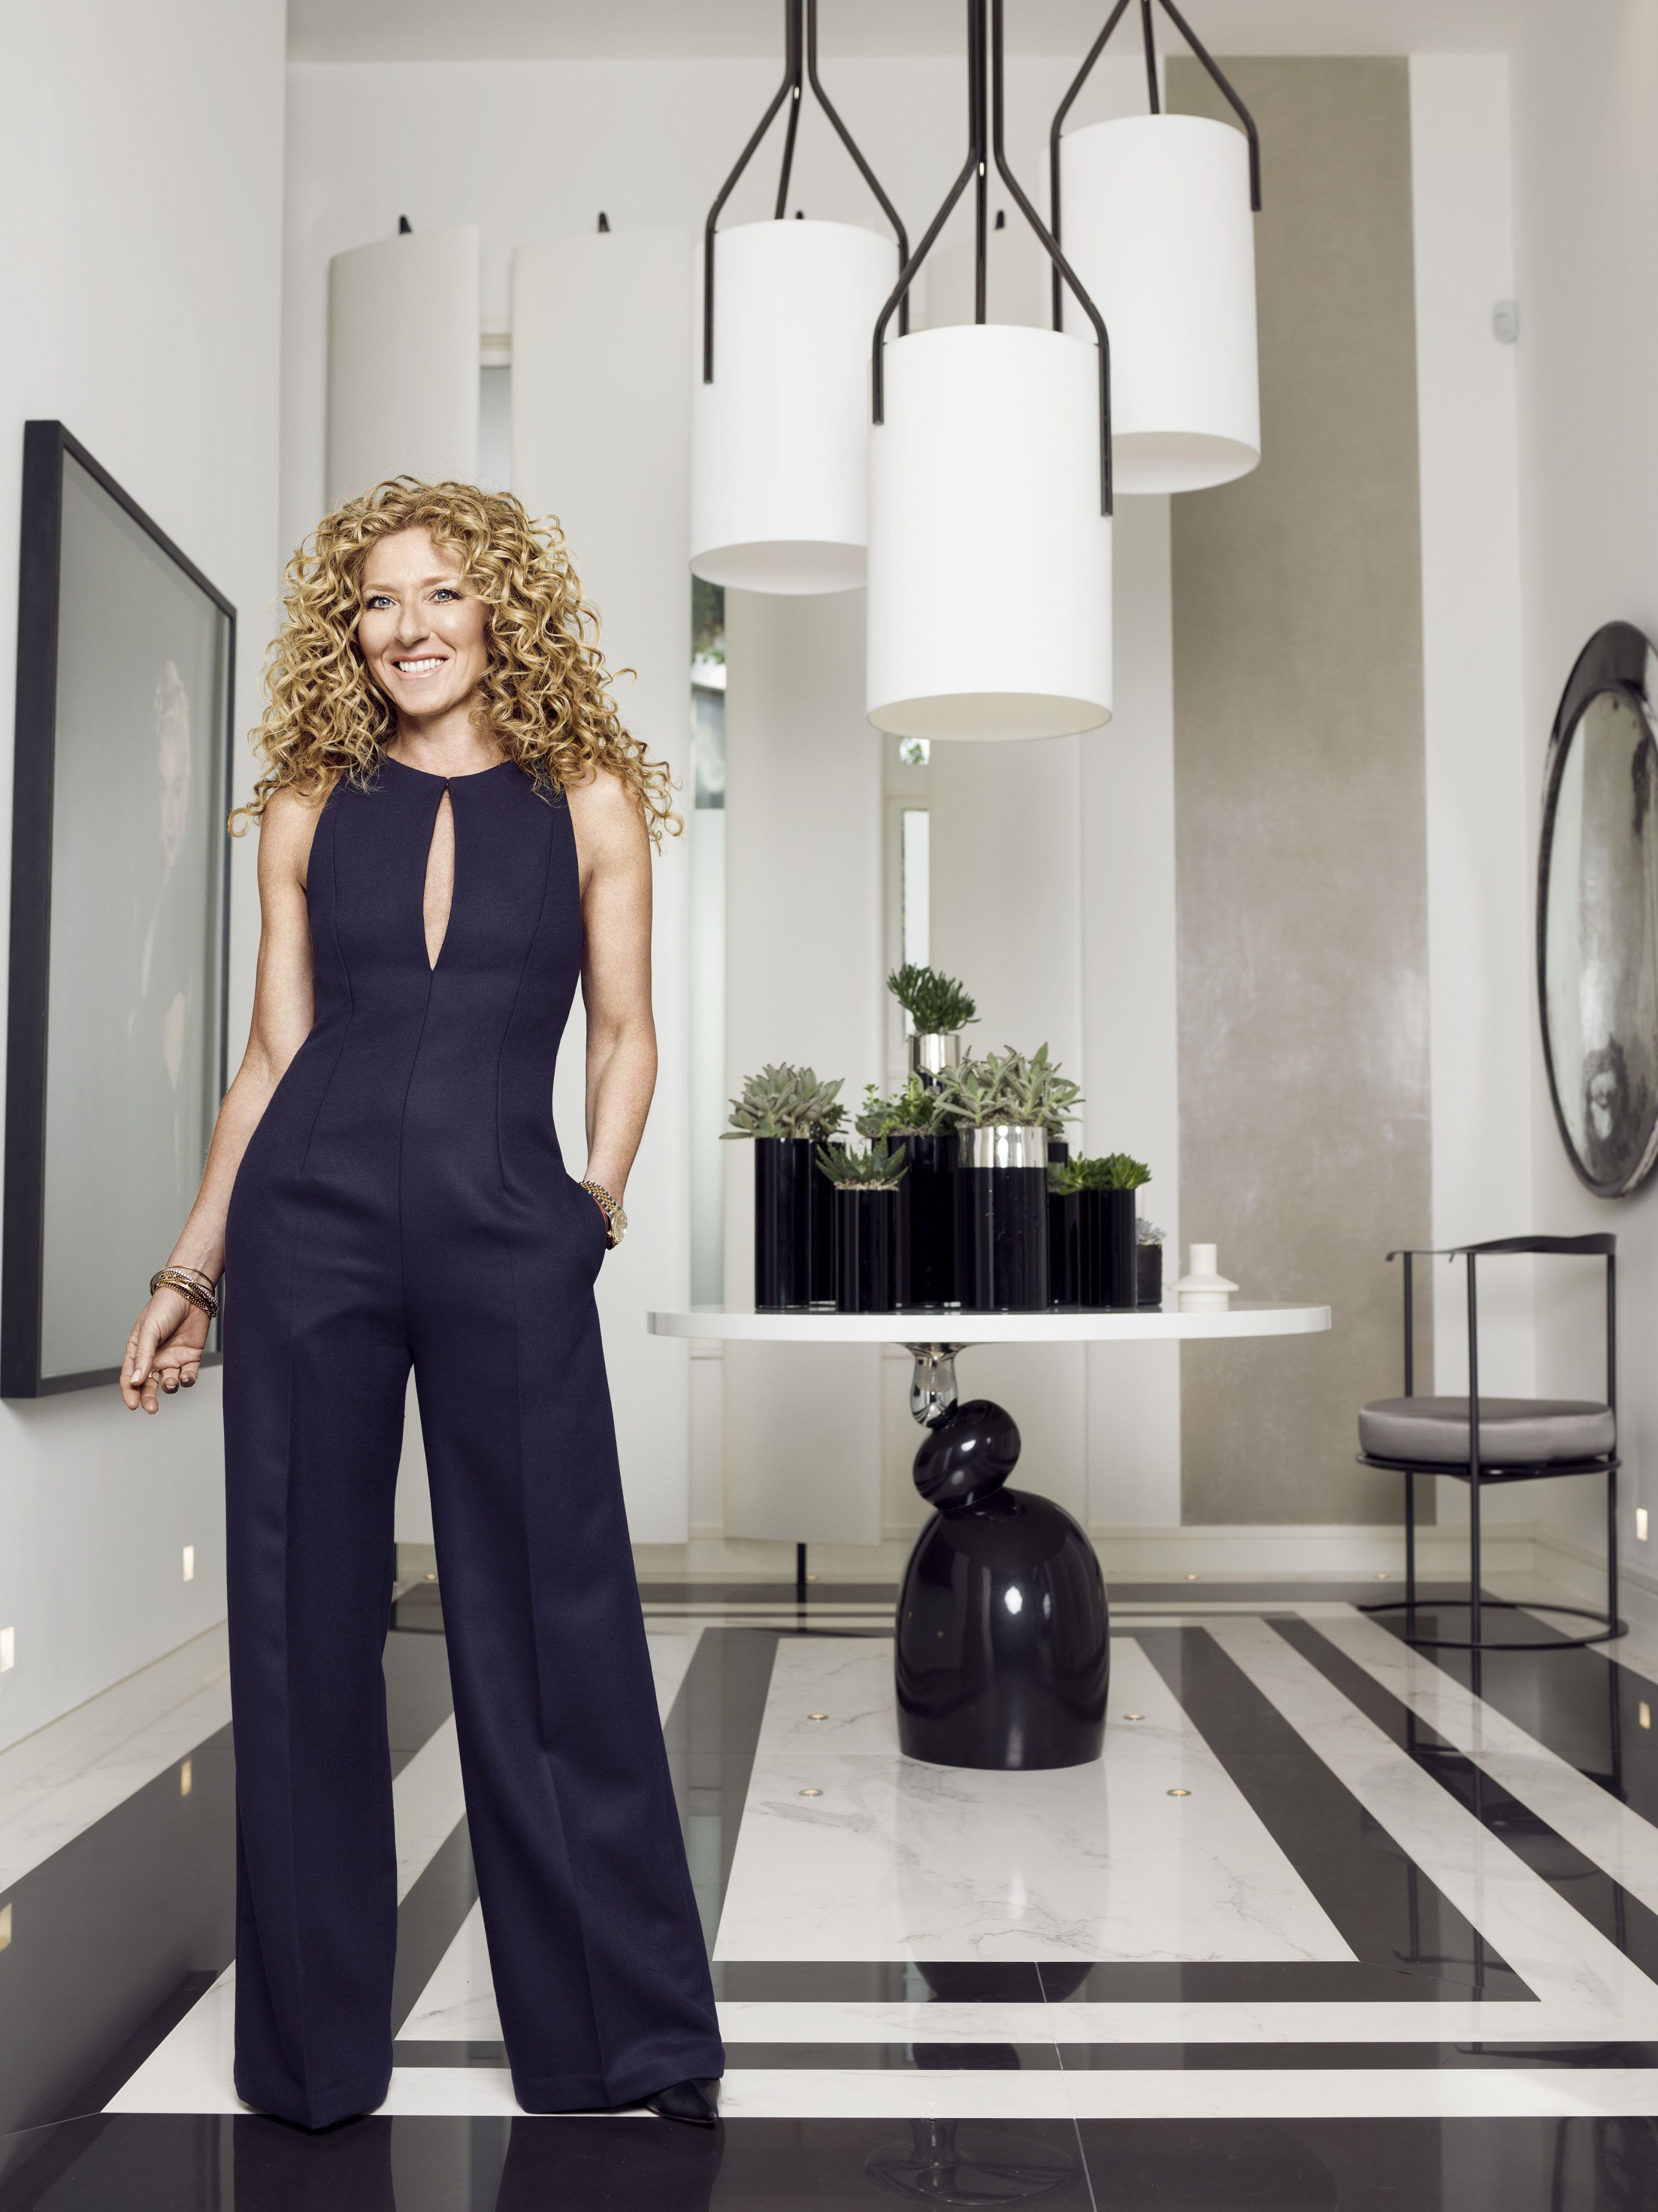 Interior Designer Kelly Hoppen Profile Photo. Kelly Hoppen